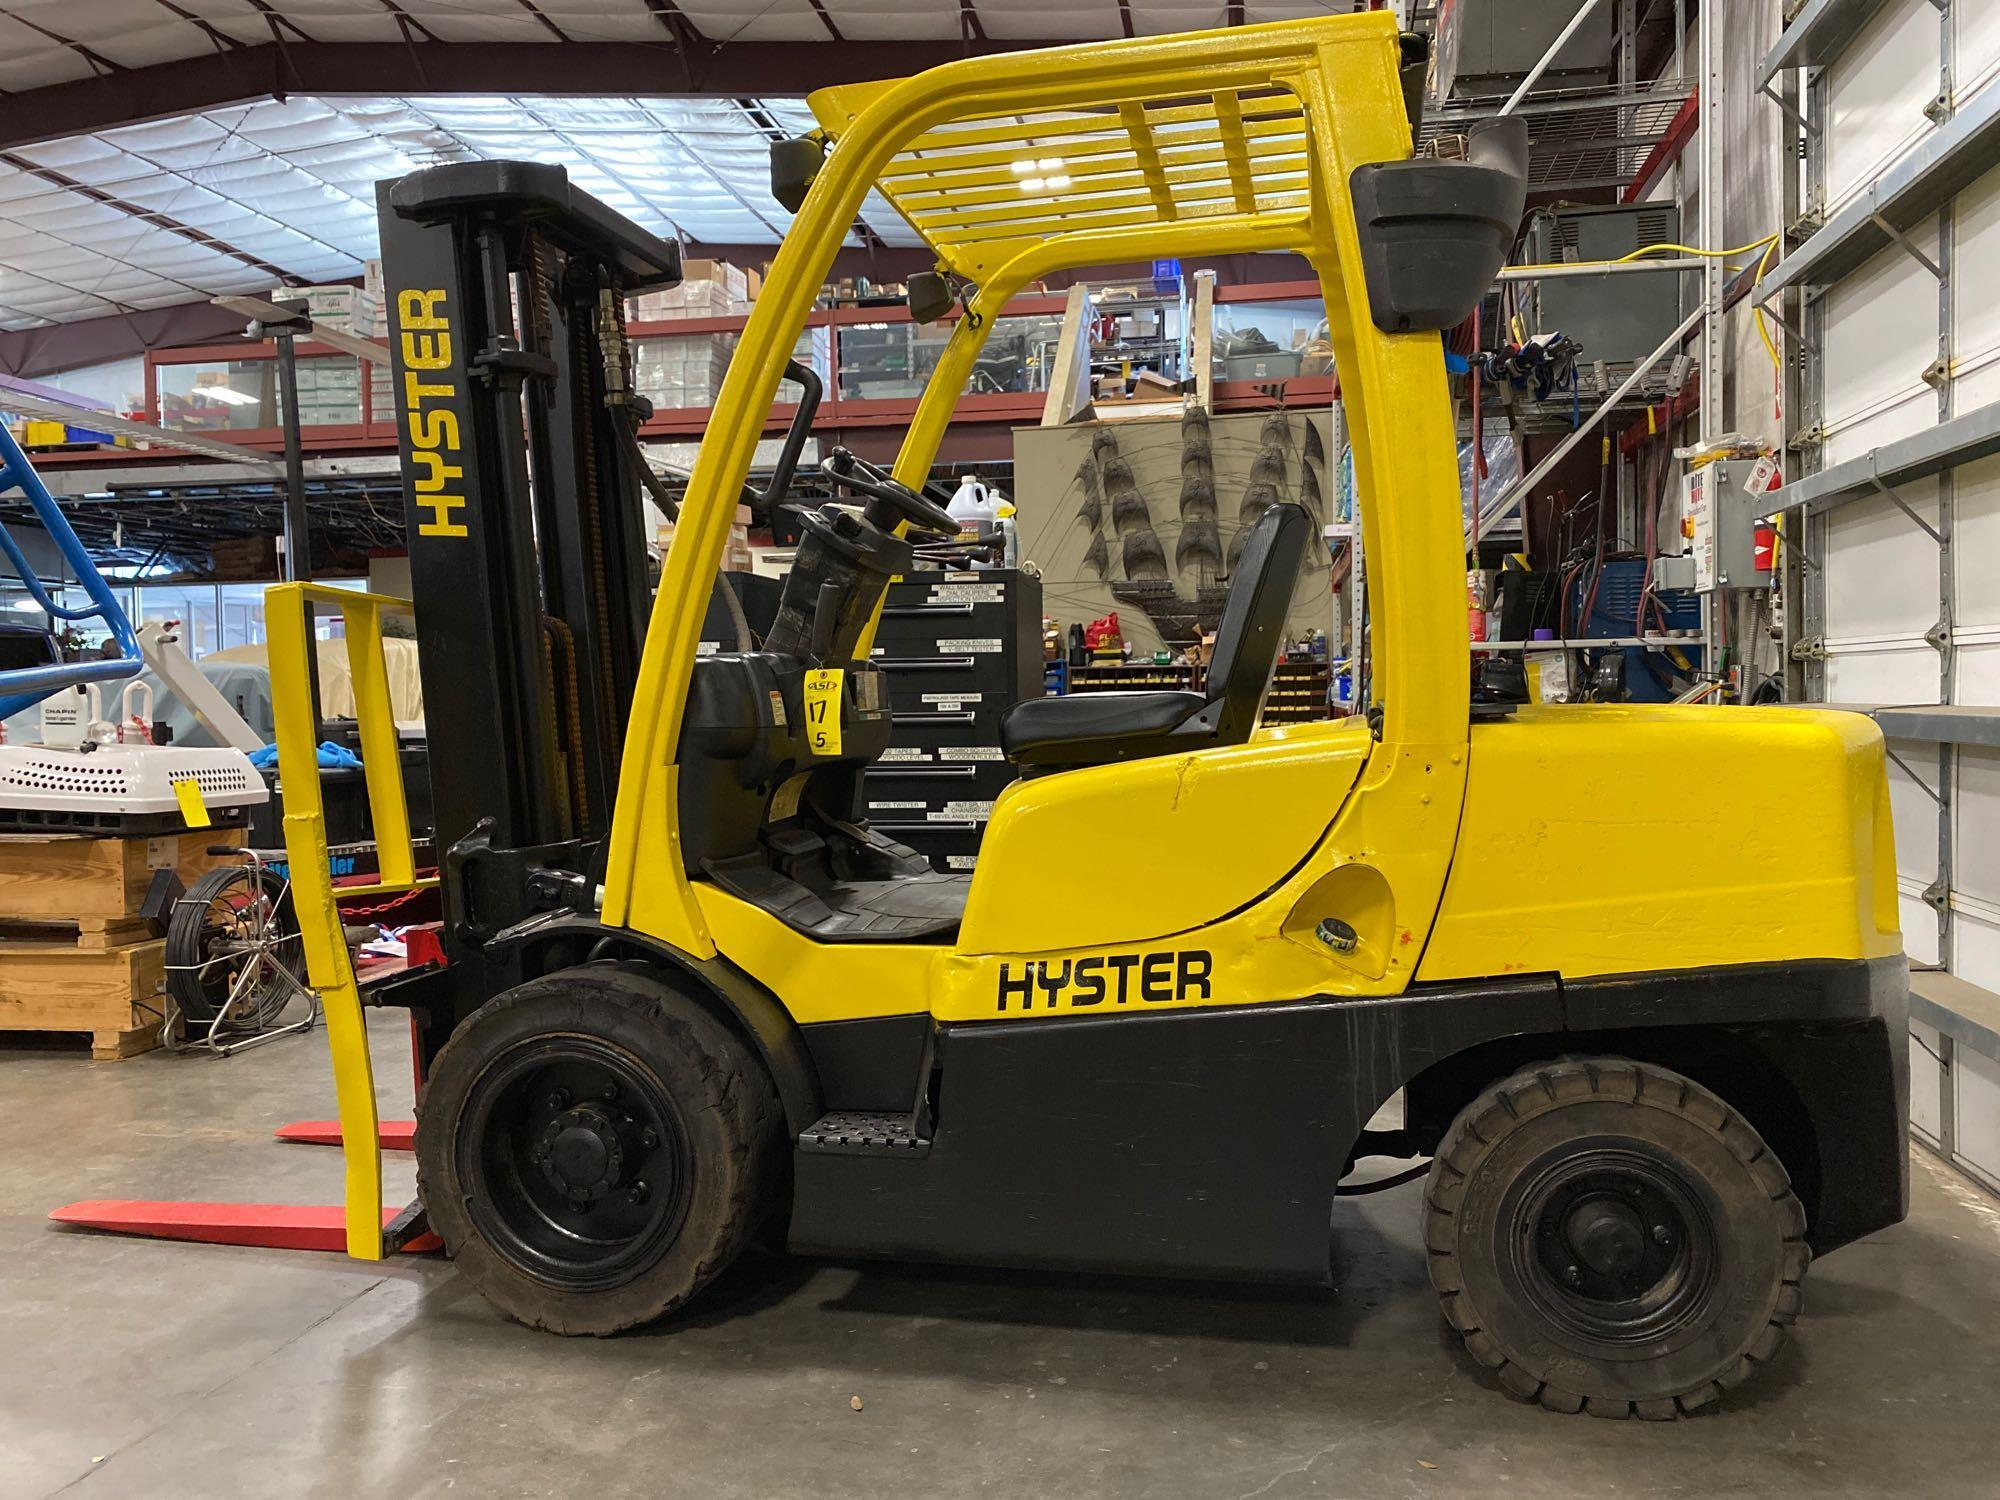 """HYSTER H70FT FORKLIFT, APPROX. 7,000 LB CAPACITY, 181.9"""" HEIGHT CAP, TILT, RUNS AND OPERATES"""